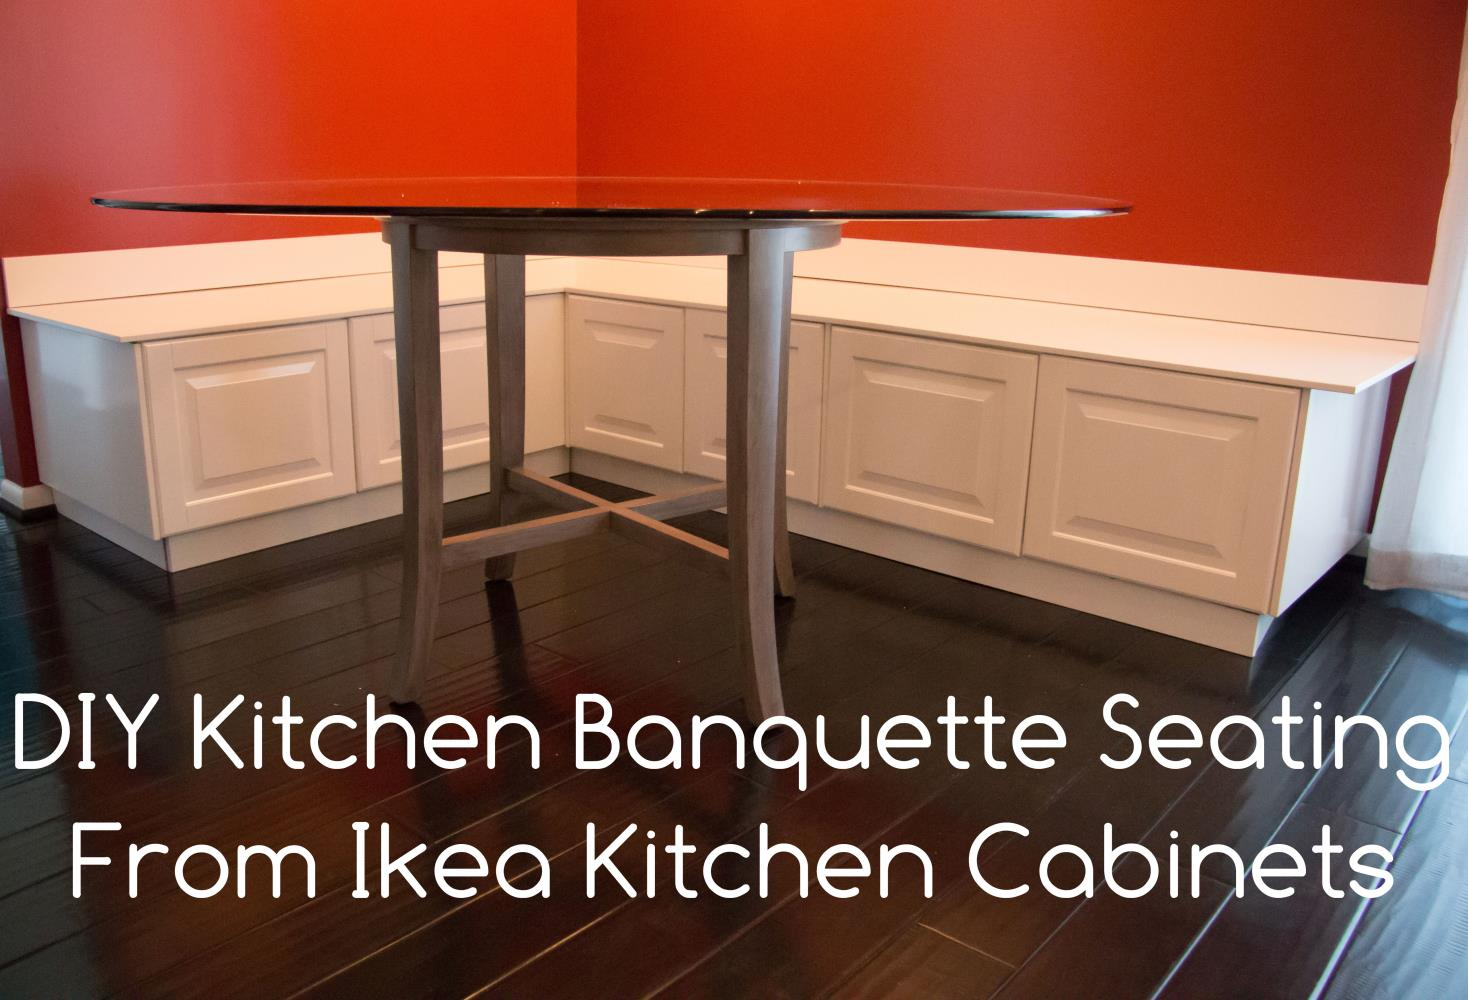 Ikea Bench Seat Kitchen